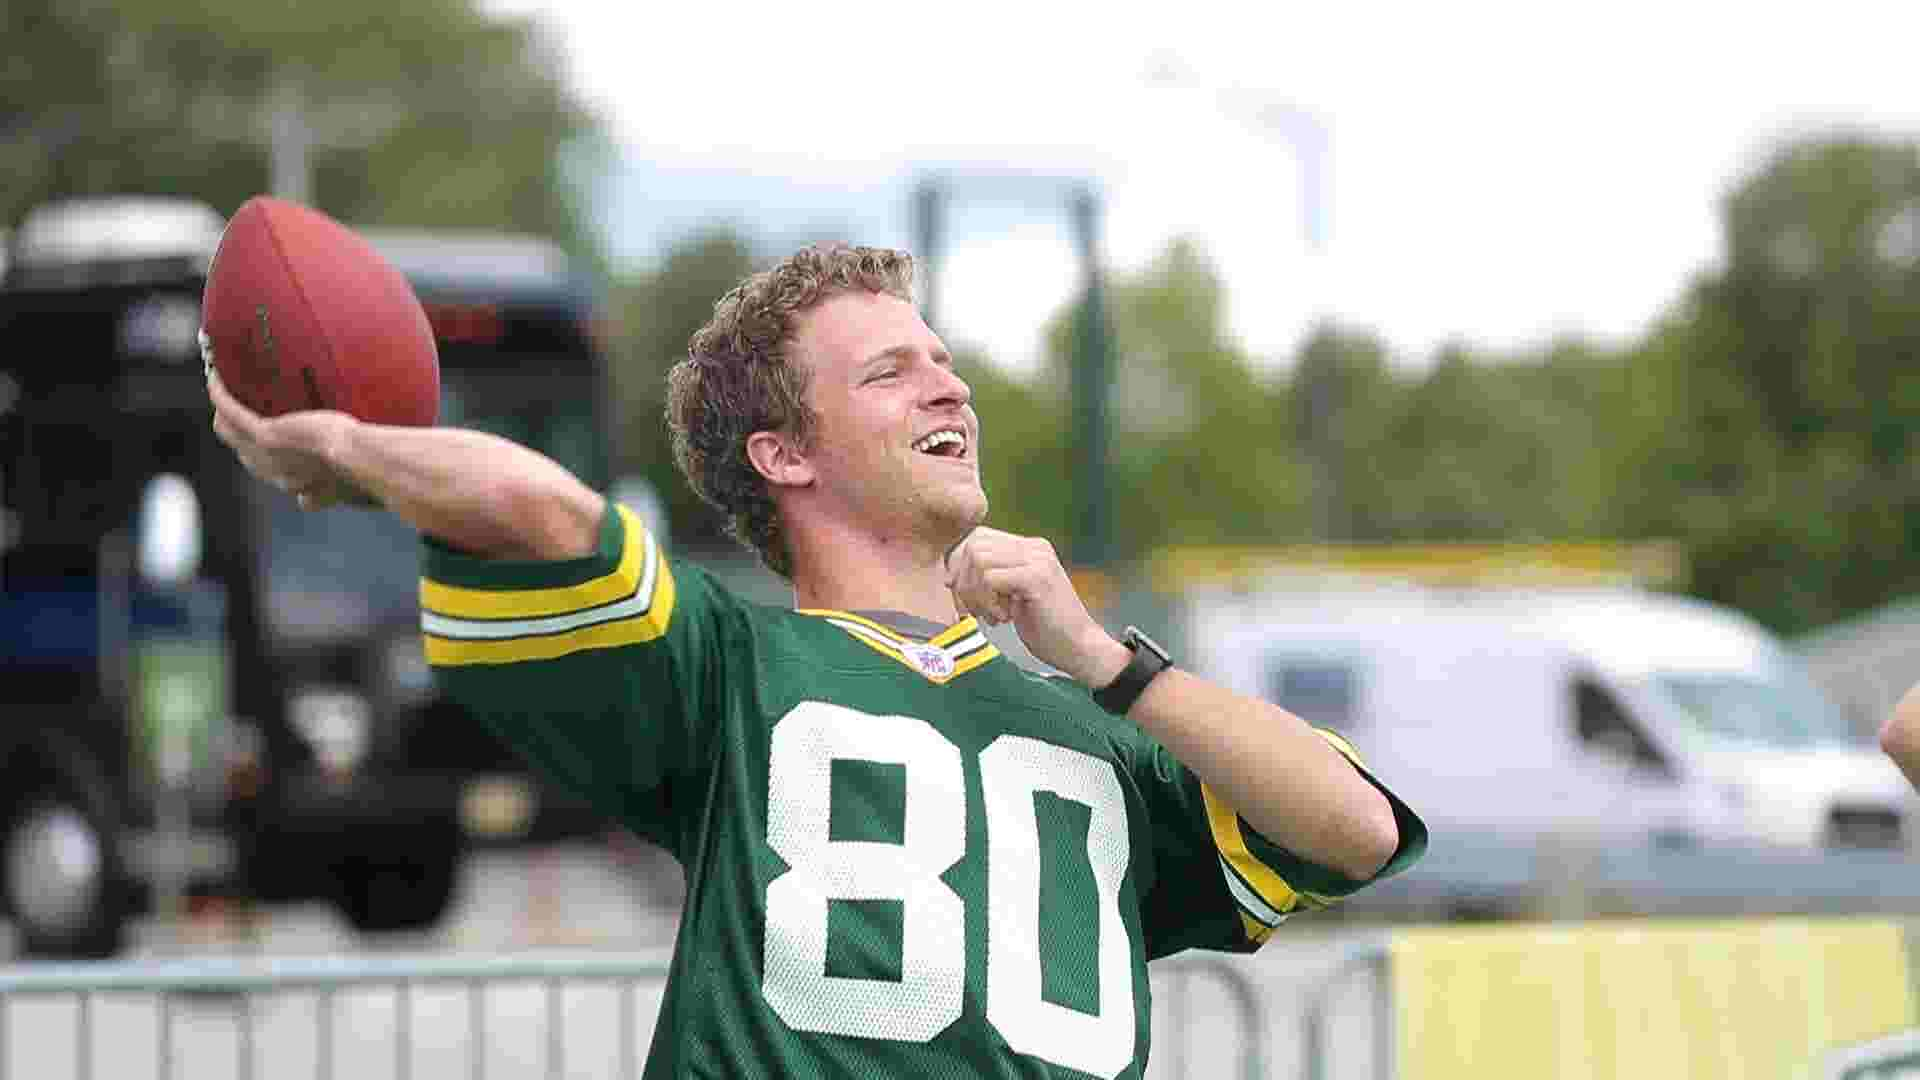 Packers training camp kicks off with football, festivals and fireworks